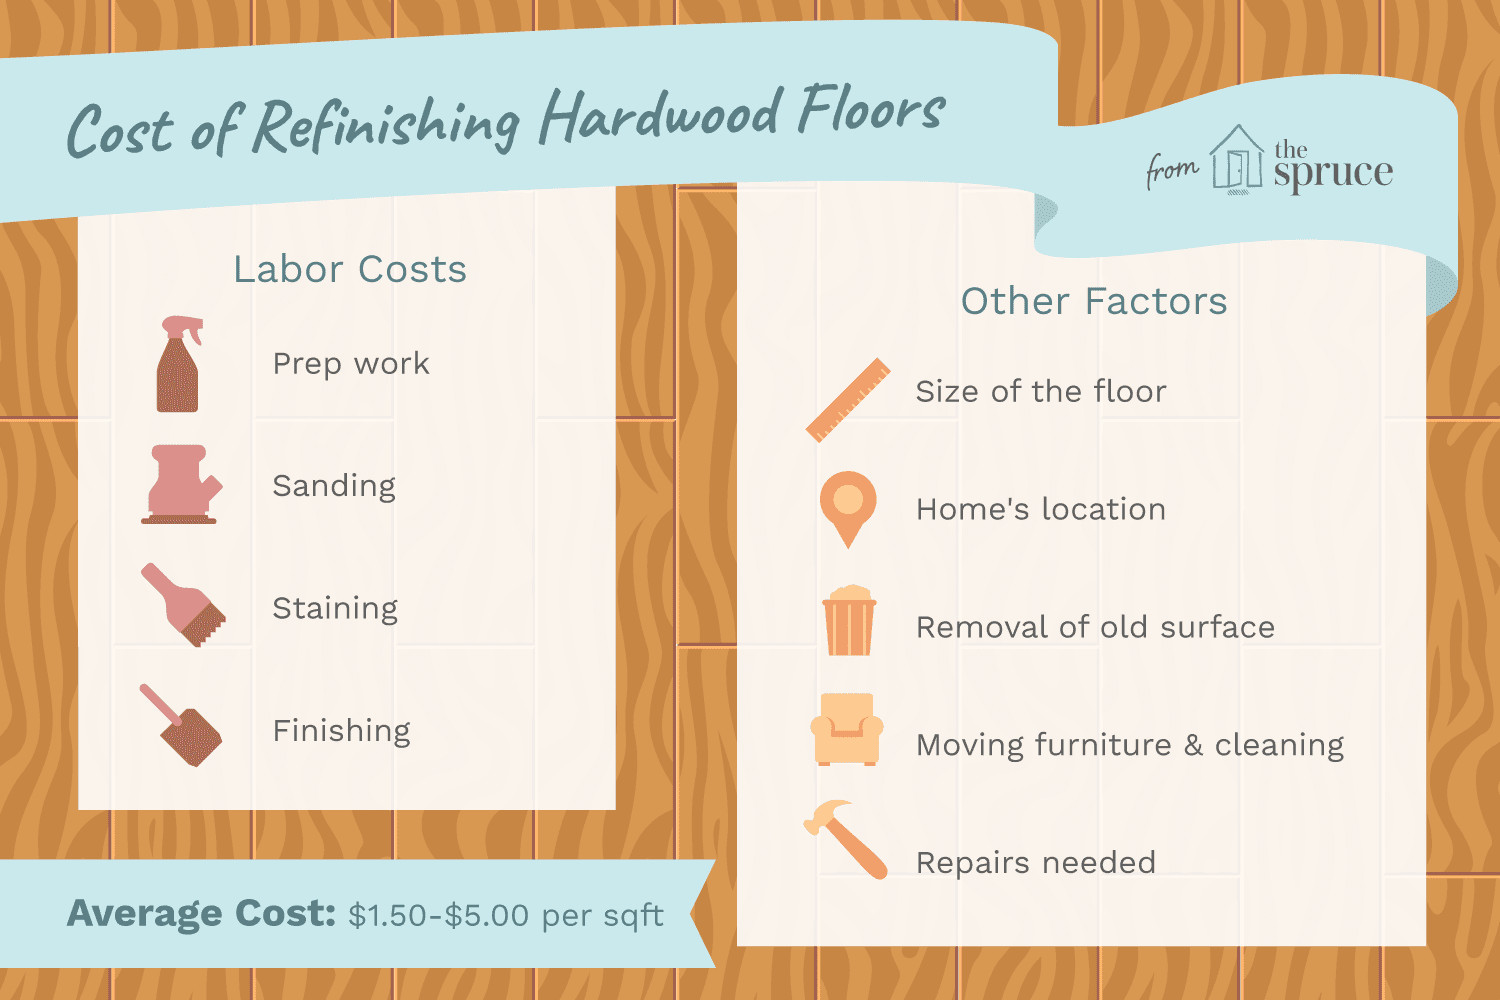 how much does restaining hardwood floors cost of the cost to refinish hardwood floors for cost to refinish hardwood floors 1314853 final 5bb6259346e0fb0026825ce2